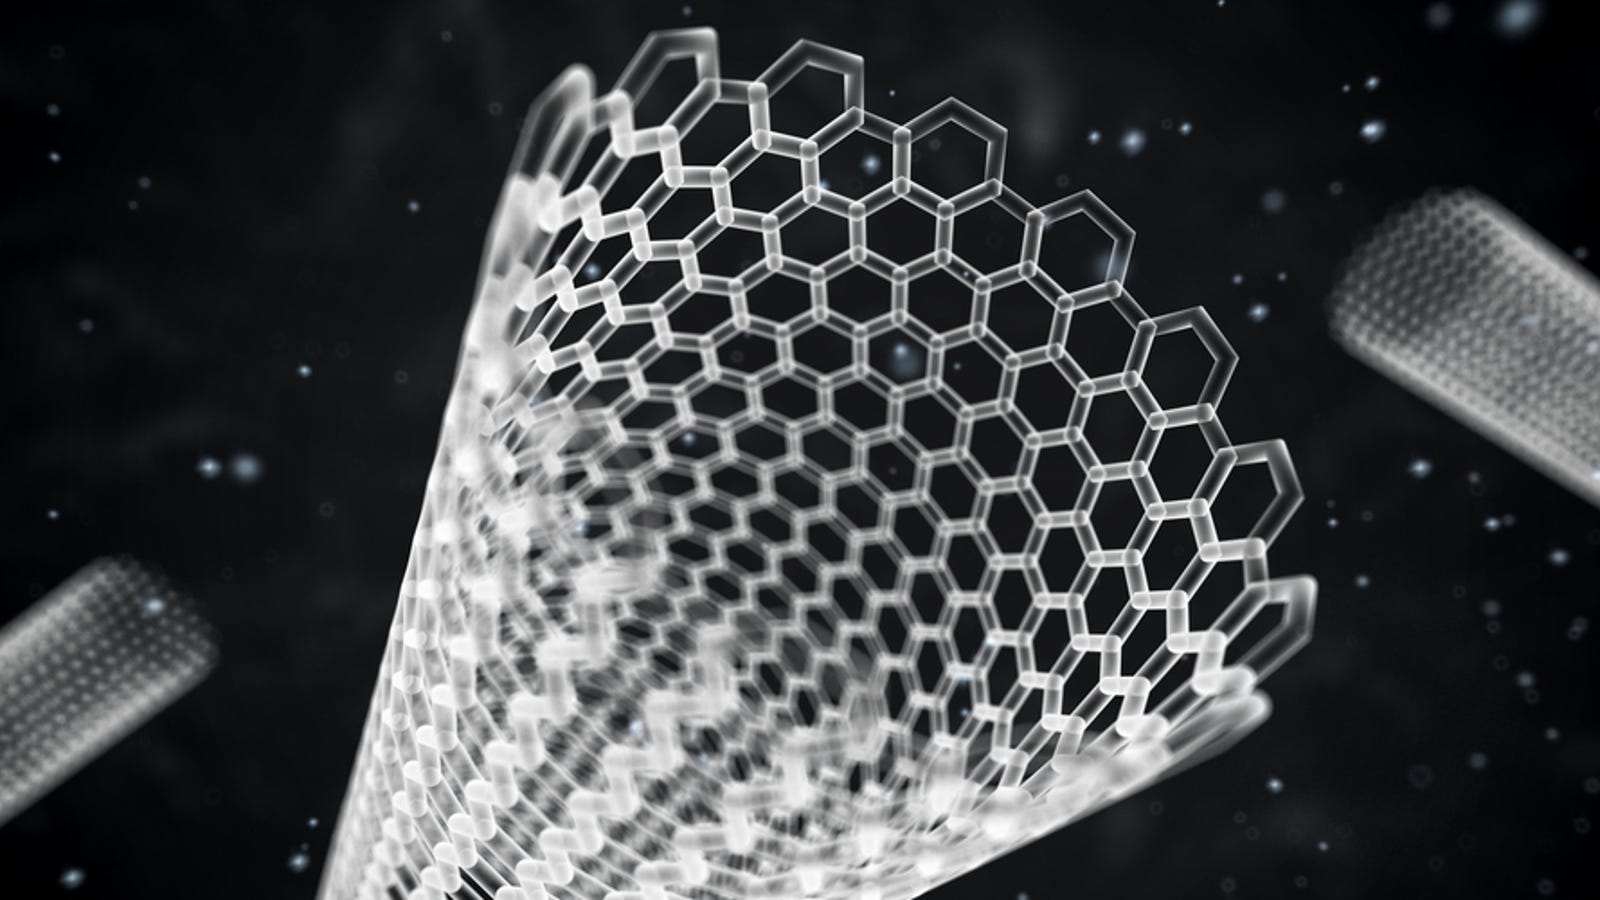 carbon nanotubes found in human lungs for the first time